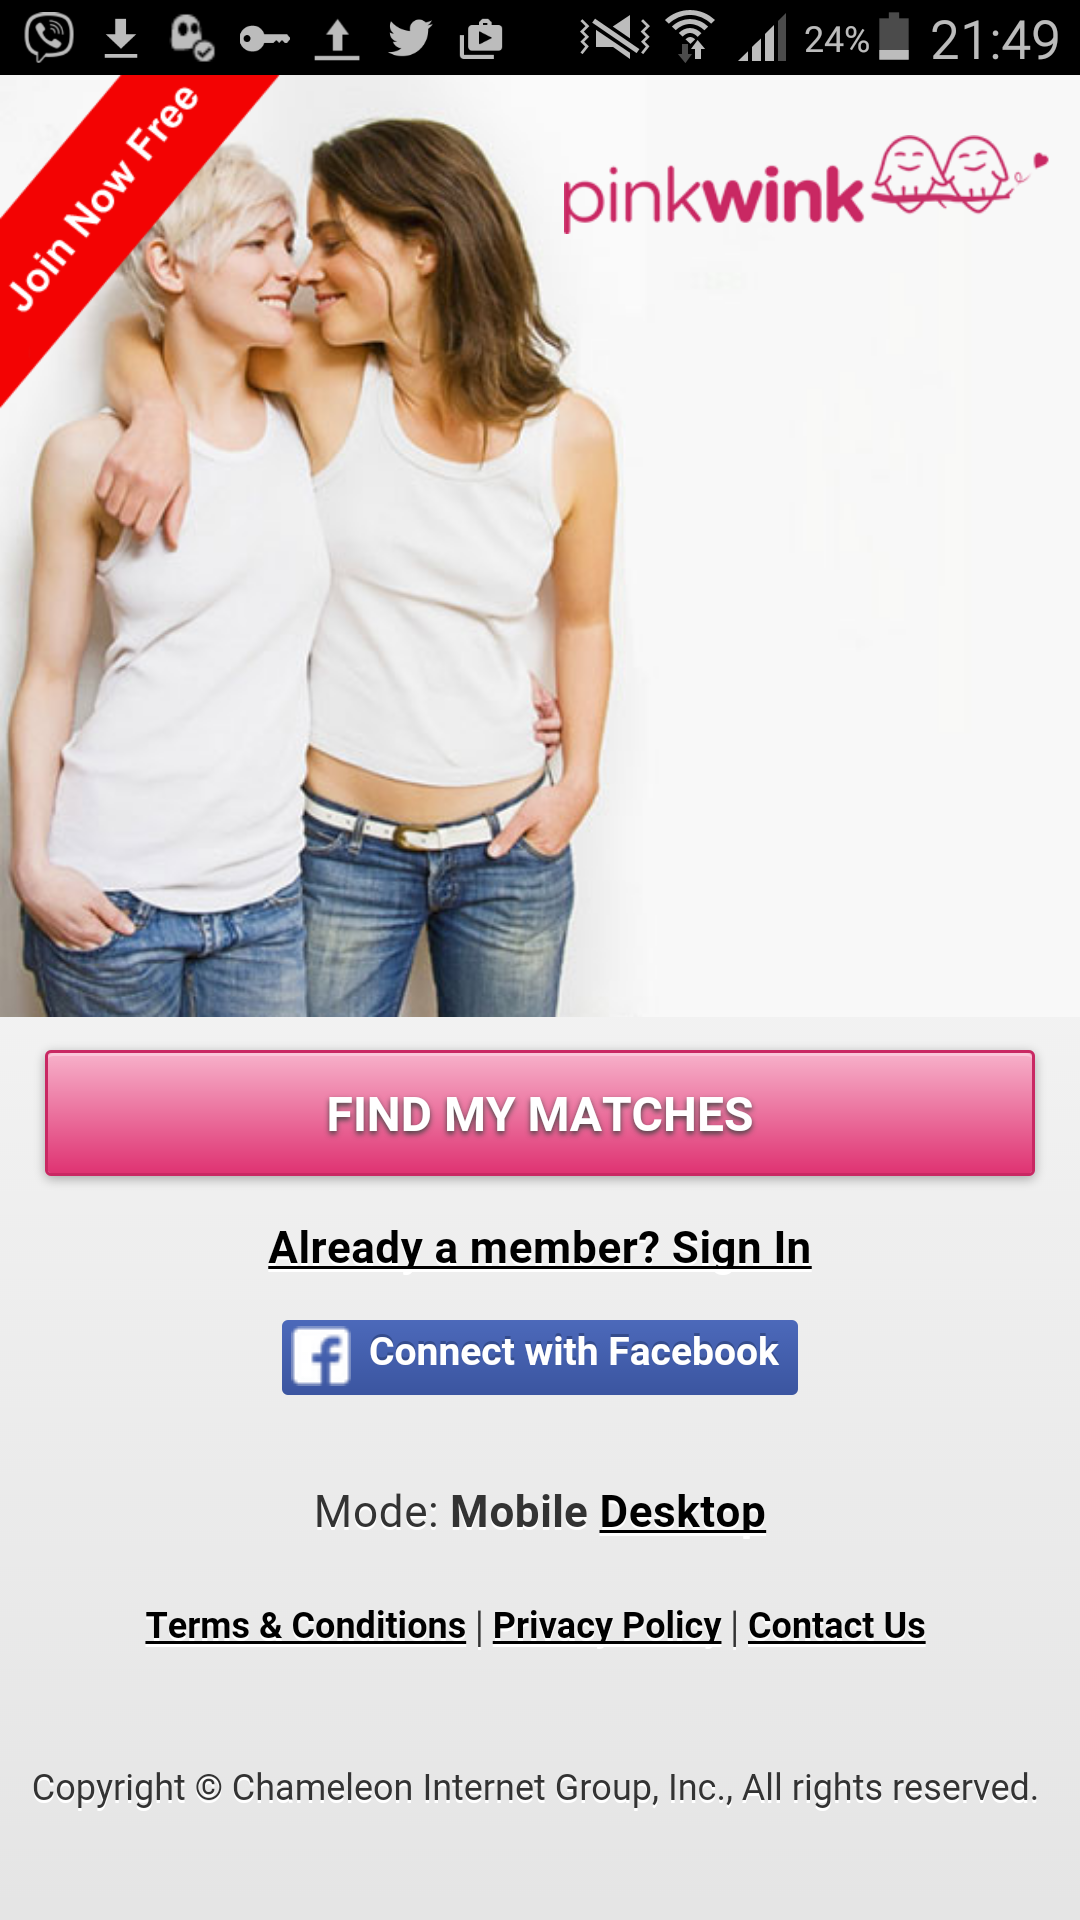 changewater lesbian dating site Changewater's best 100% free lesbian dating site connect with other single lesbians in changewater with mingle2's free changewater lesbian personal ads place your own free ad and view hundreds of other online personals to meet available lesbians in changewater looking for friends, lovers, and girlfriends.